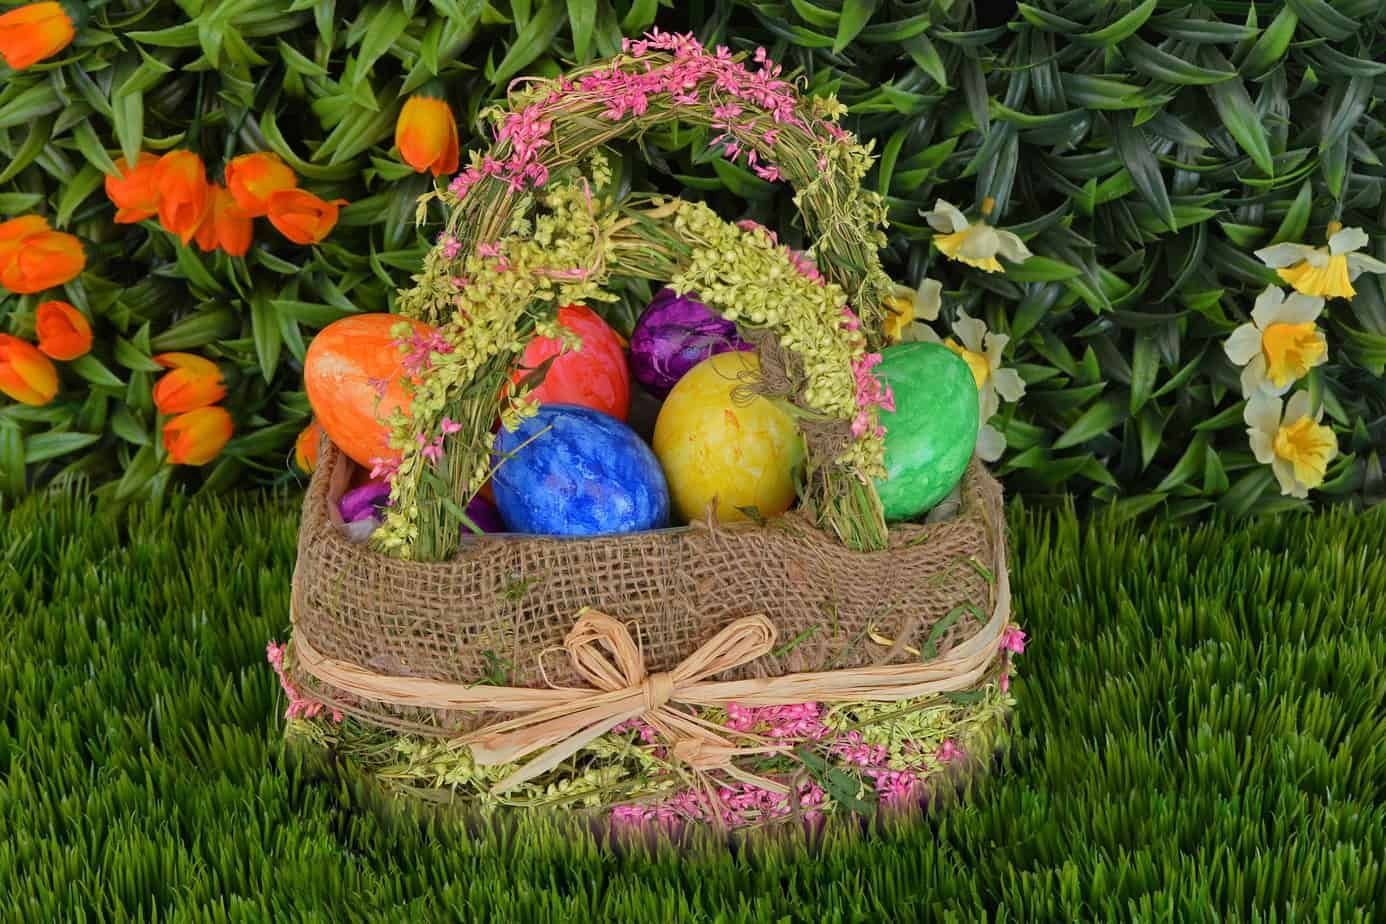 24 candy free easter egg basket ideas for all ages i have a friend who throws them often and its so much fun think of your candy free easter basket as a a mini negle Images